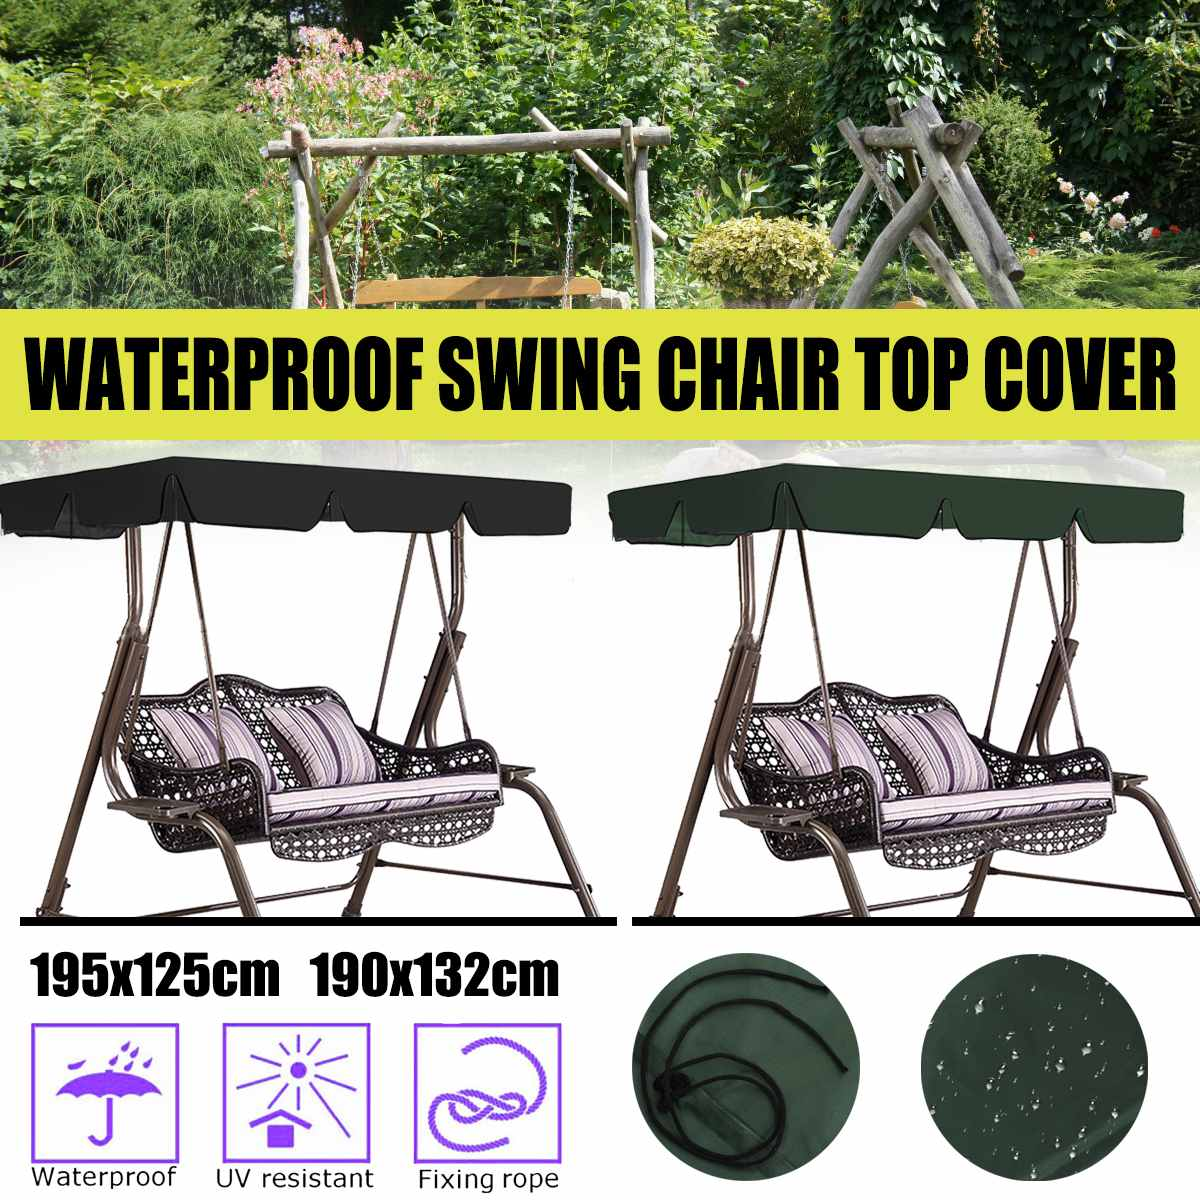 Us 11 27 52 Off 2 3 Seats Garden Swing Cover Shade Waterproof Swing Chair Top Cover Replacement Outdoor Indoor Hammock Tent Chair Shade Sail In